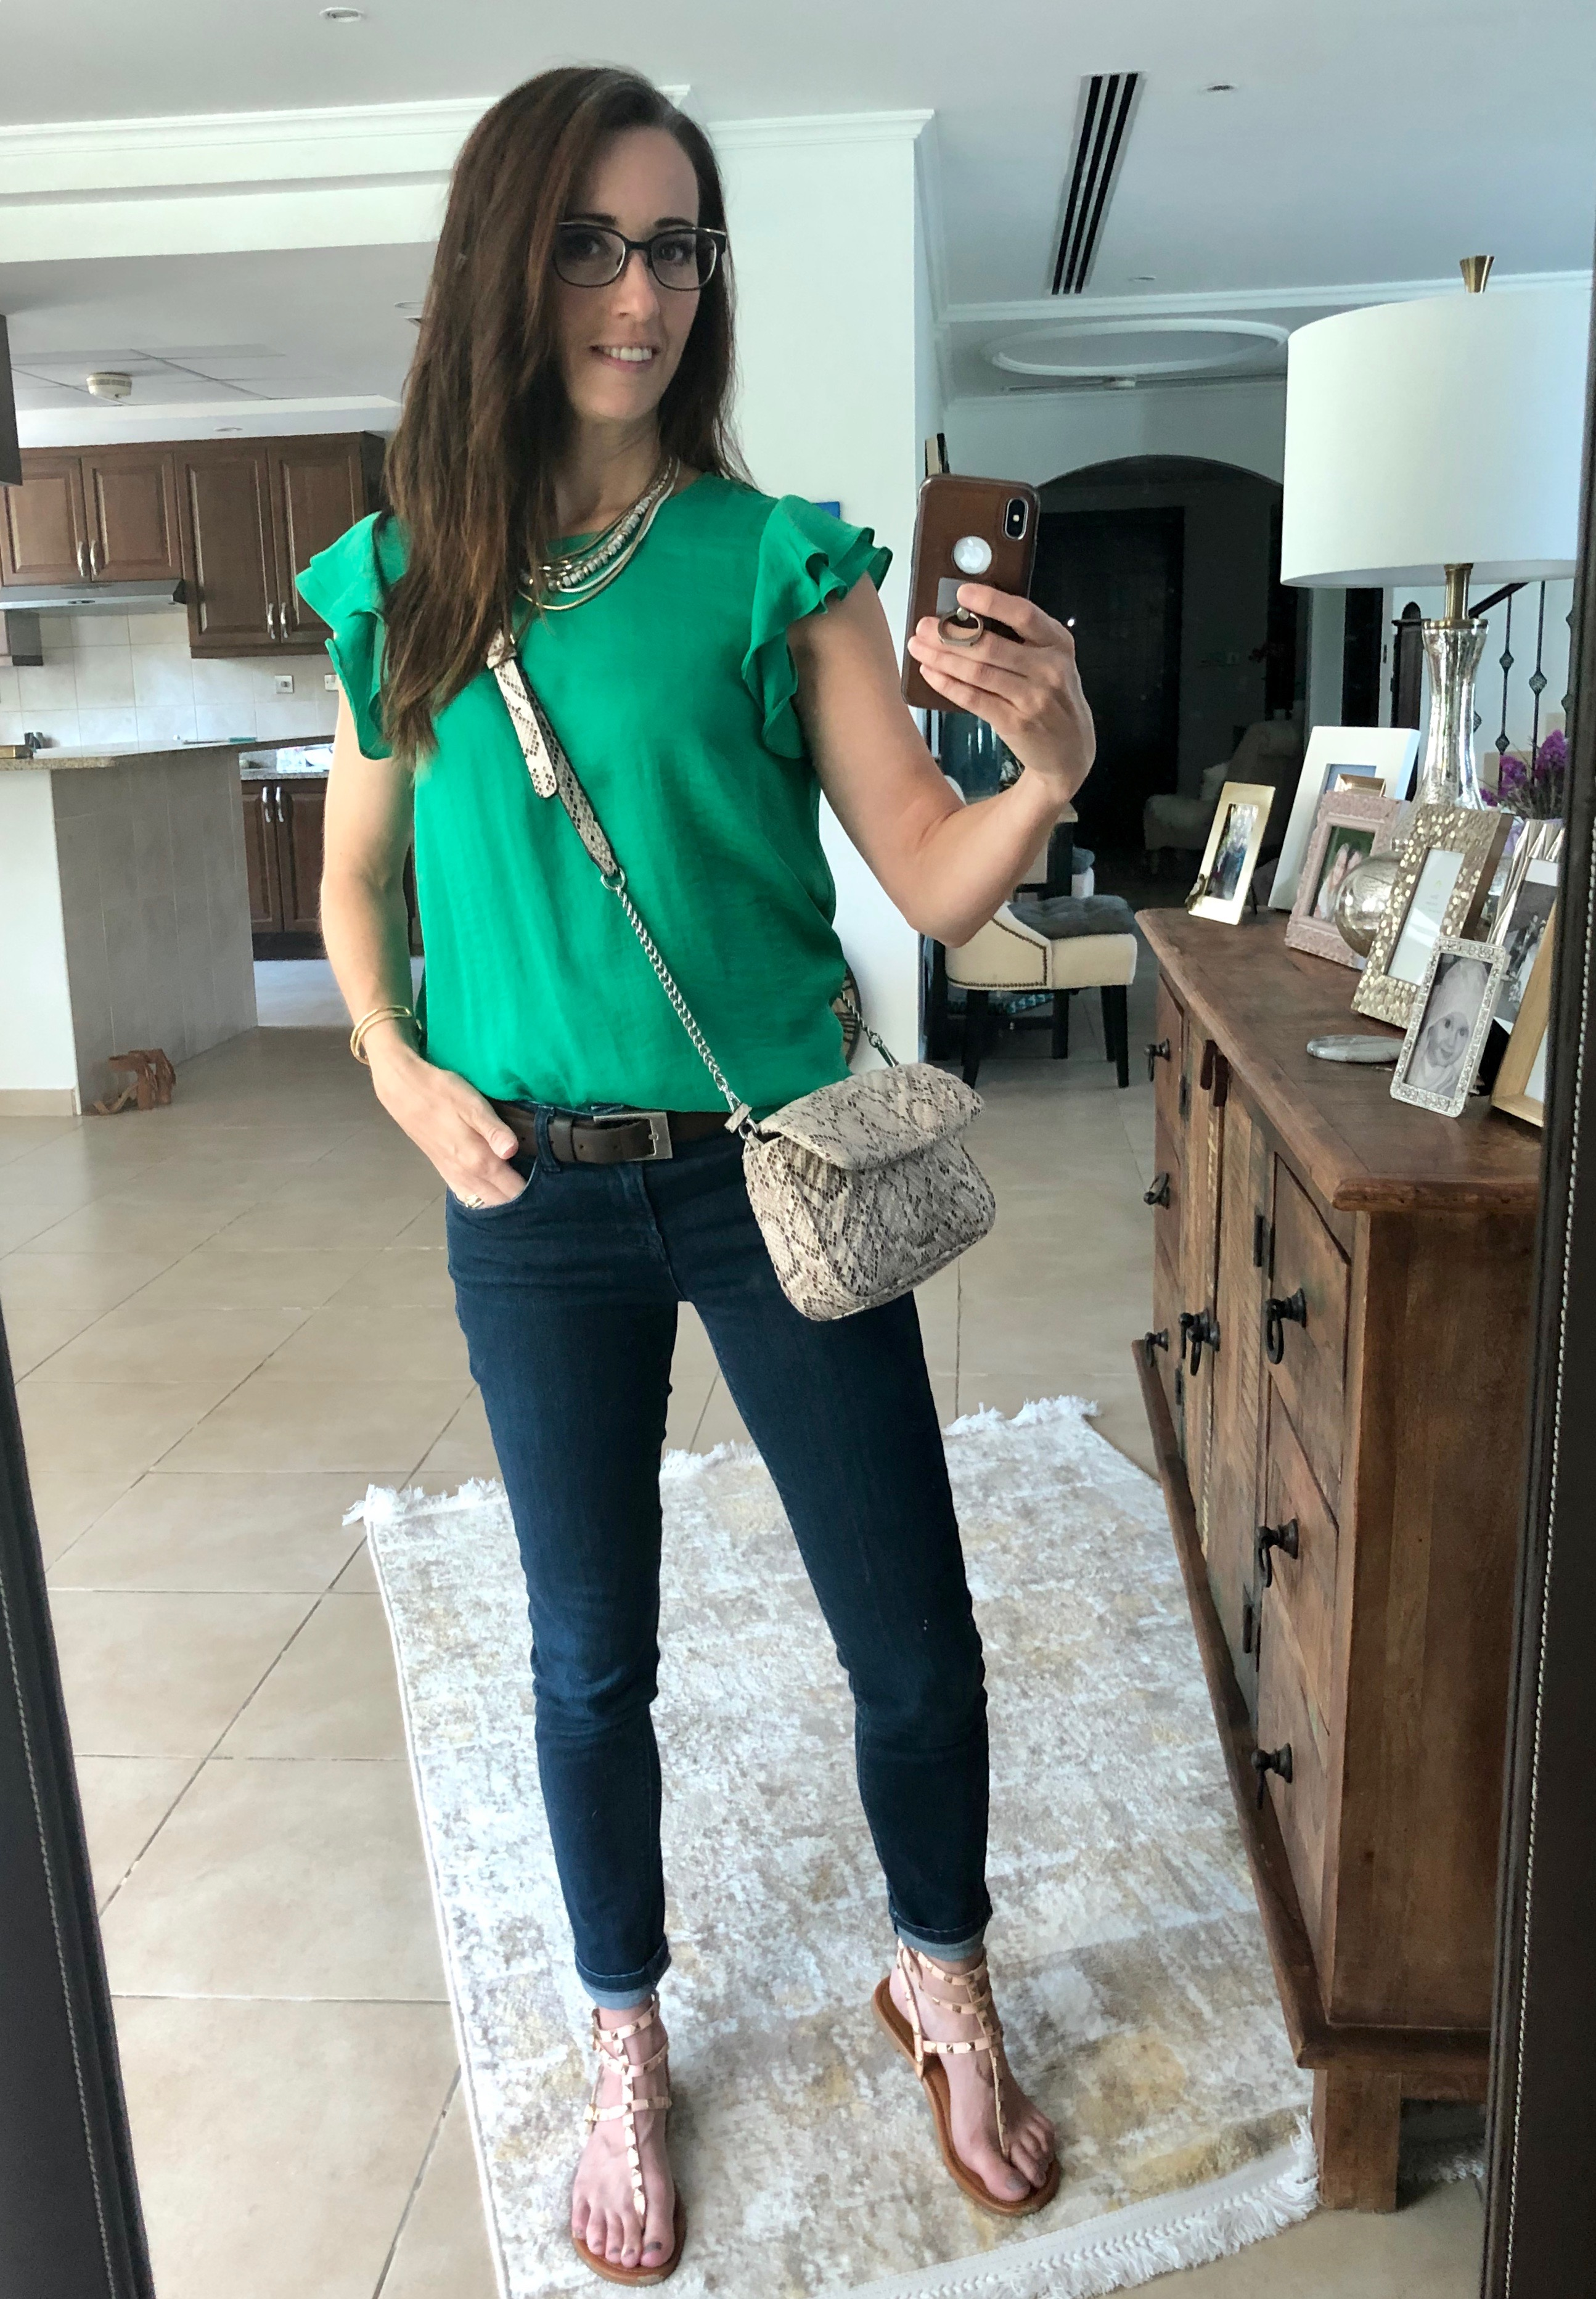 front tuck, style, tips, method39, before and after, how to front tuck, stylist, style advisor, get dressed